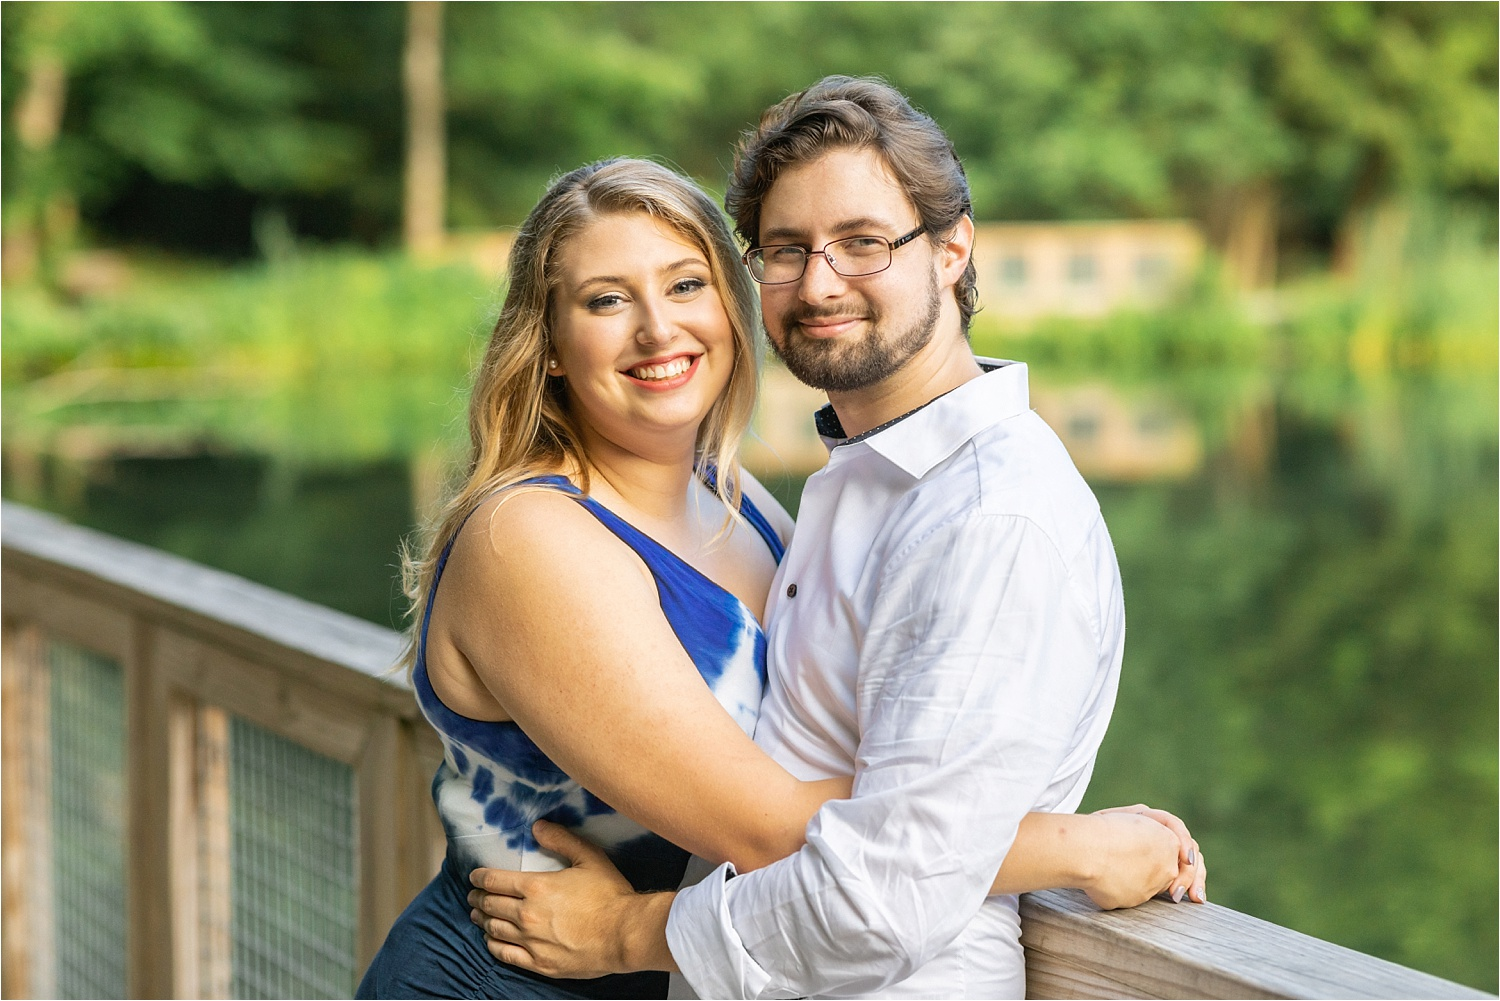 lily pond engagement session july 2019 at mill creek park